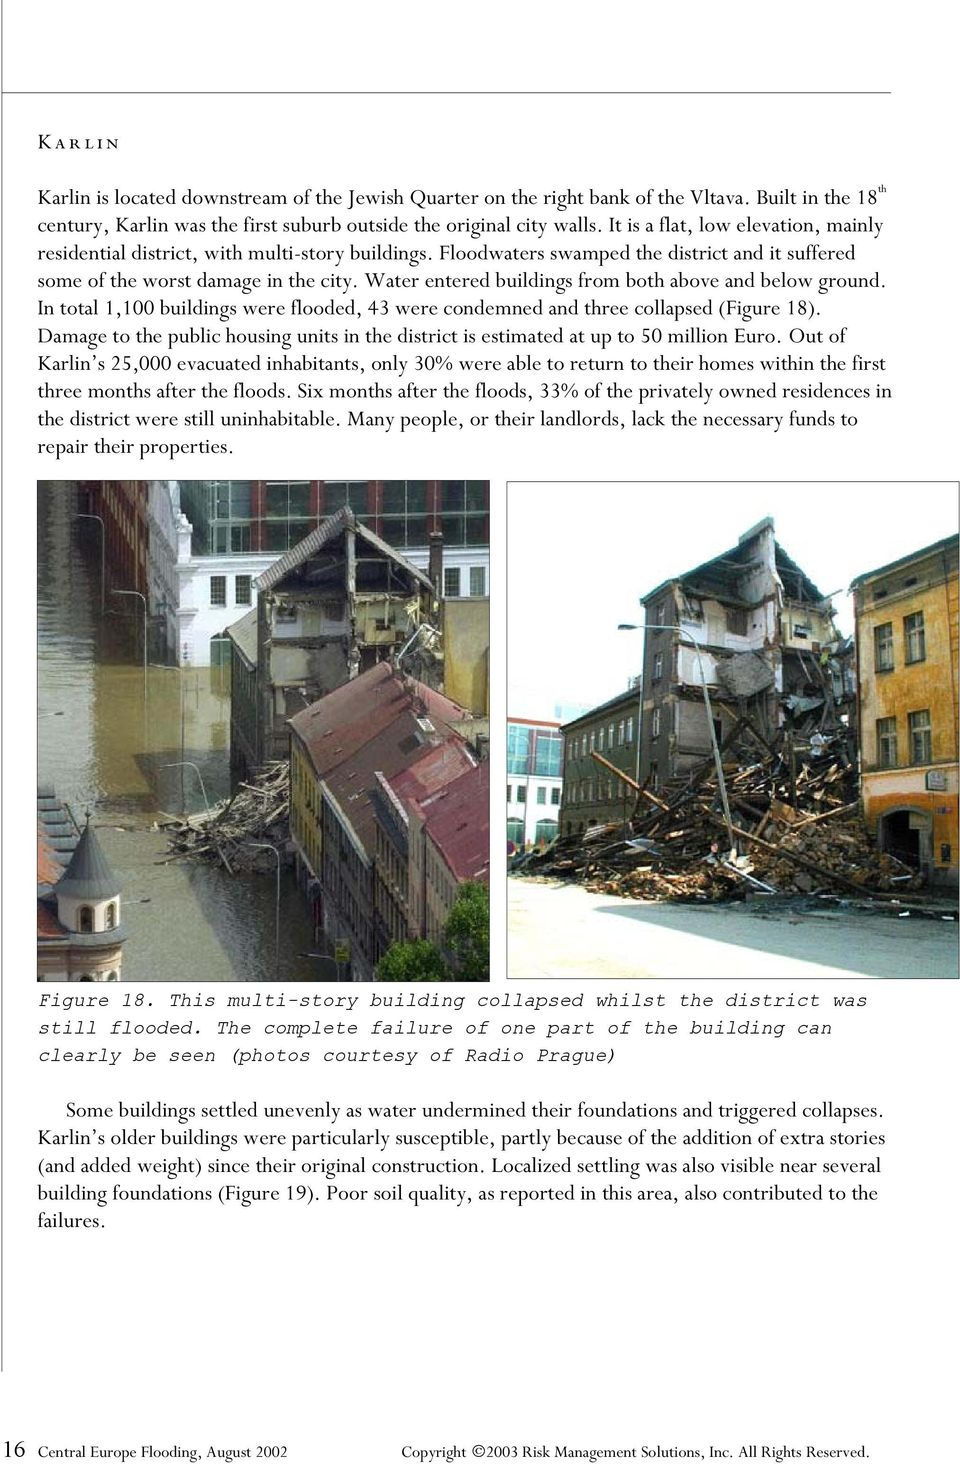 Water entered buildings from both above and below ground. In total 1,100 buildings were flooded, 43 were condemned and three collapsed (Figure 18).